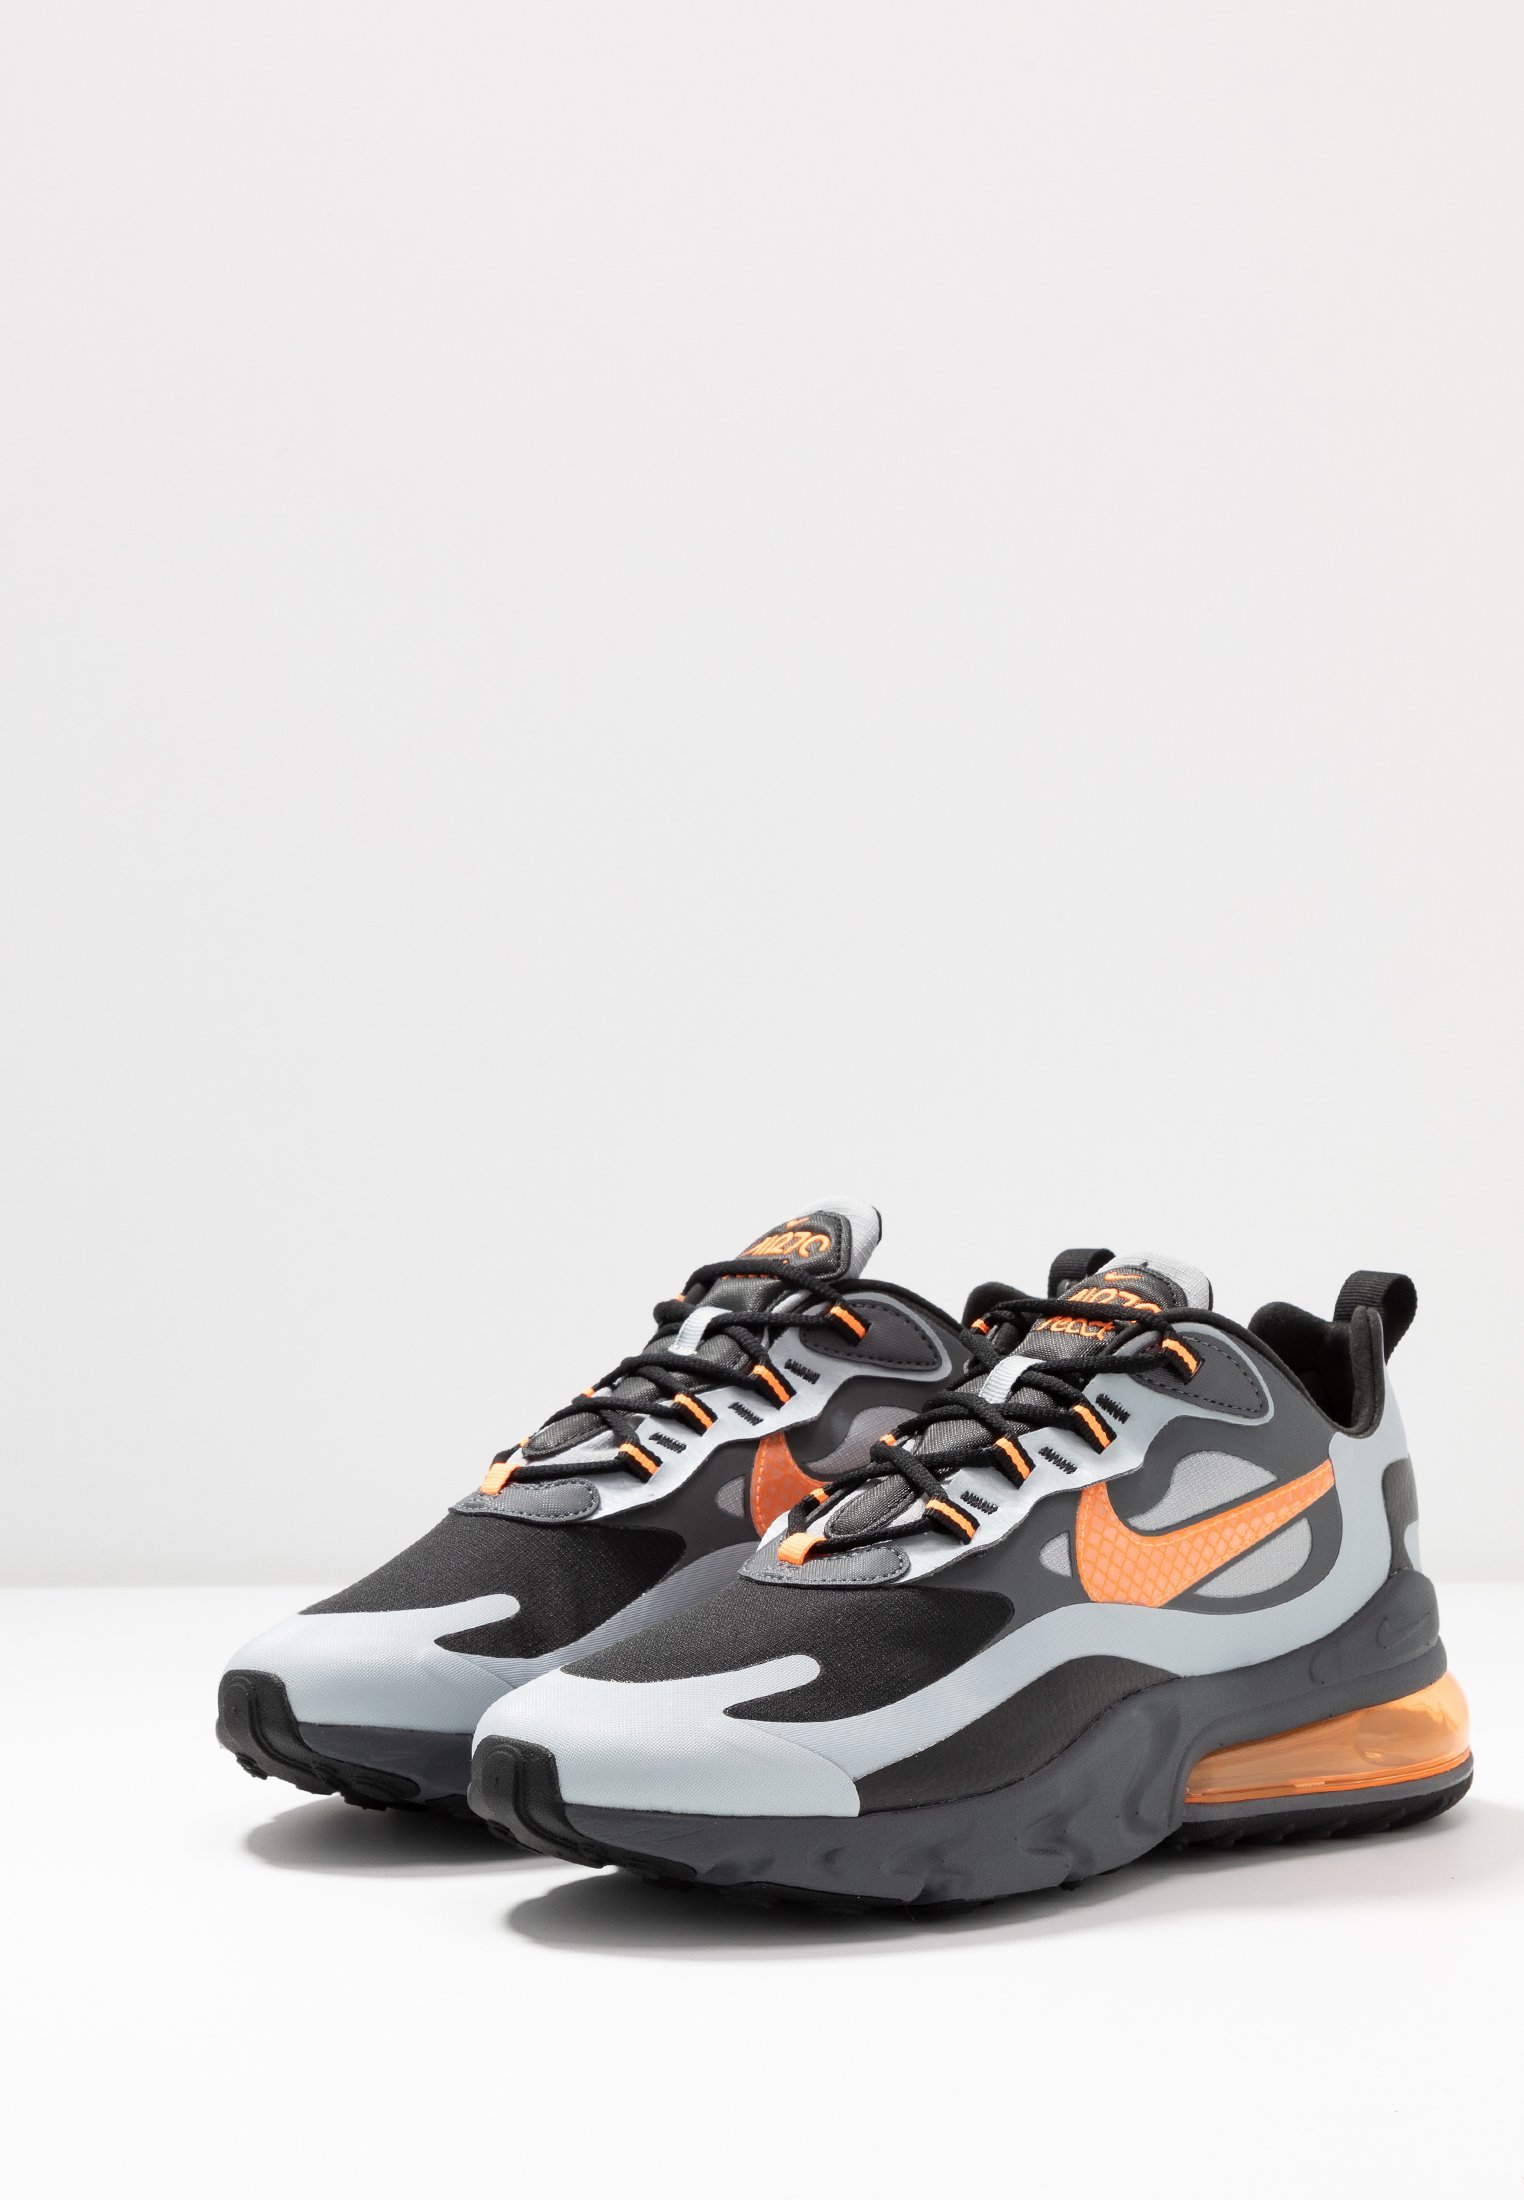 270 total black MAX WTRBaskets REACT Nike grey basses orange dark grey wolf Sportswear AIR wOZiuTkPX